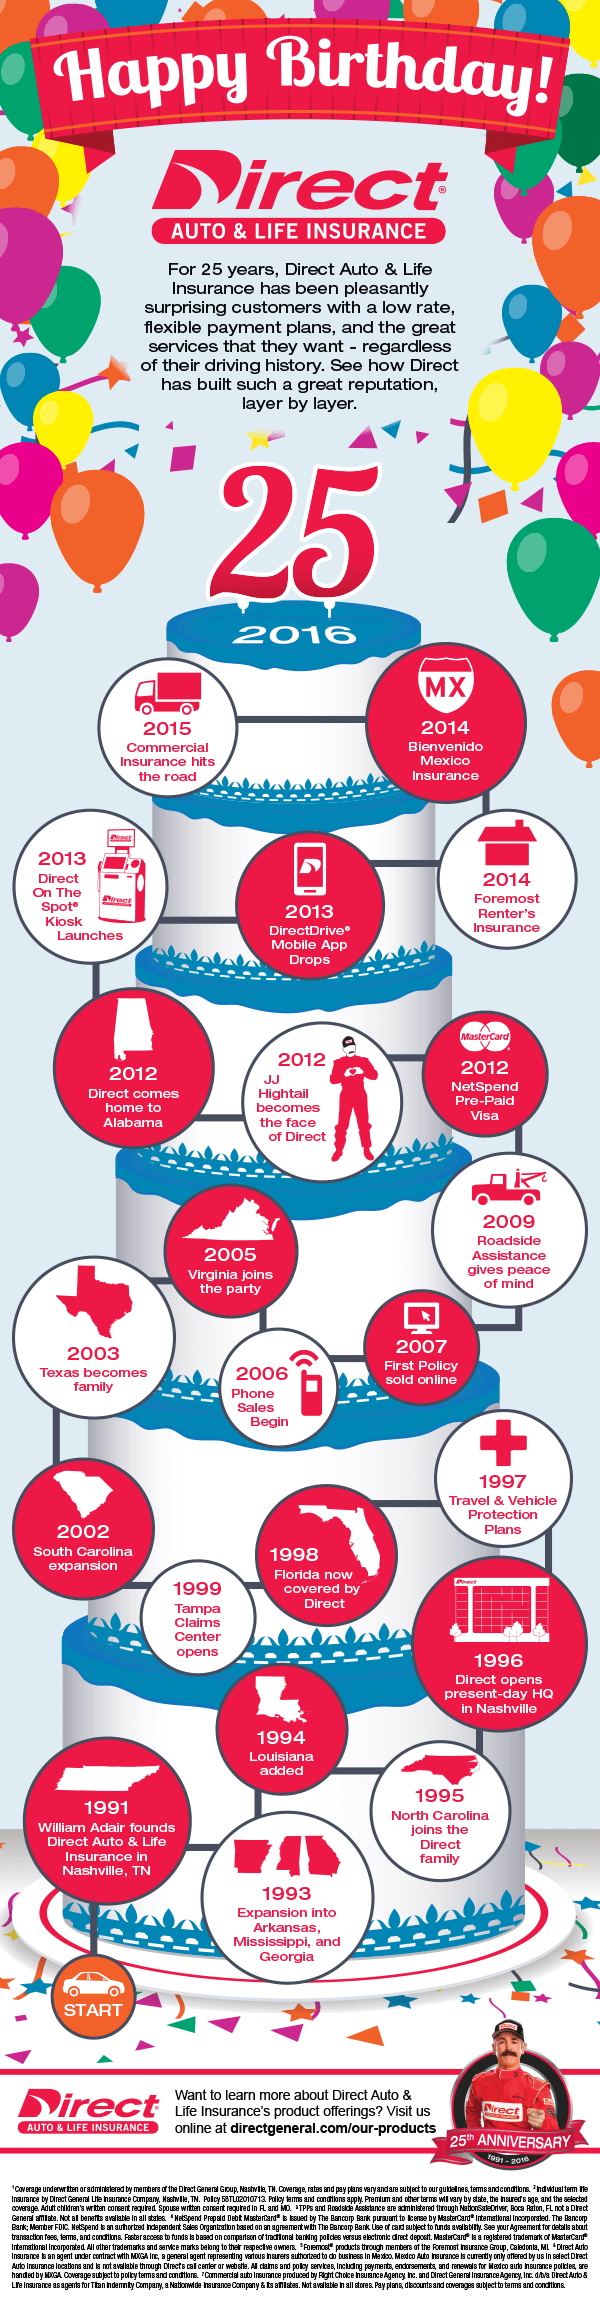 Direct Auto Insurance 25th Birthday Infographic